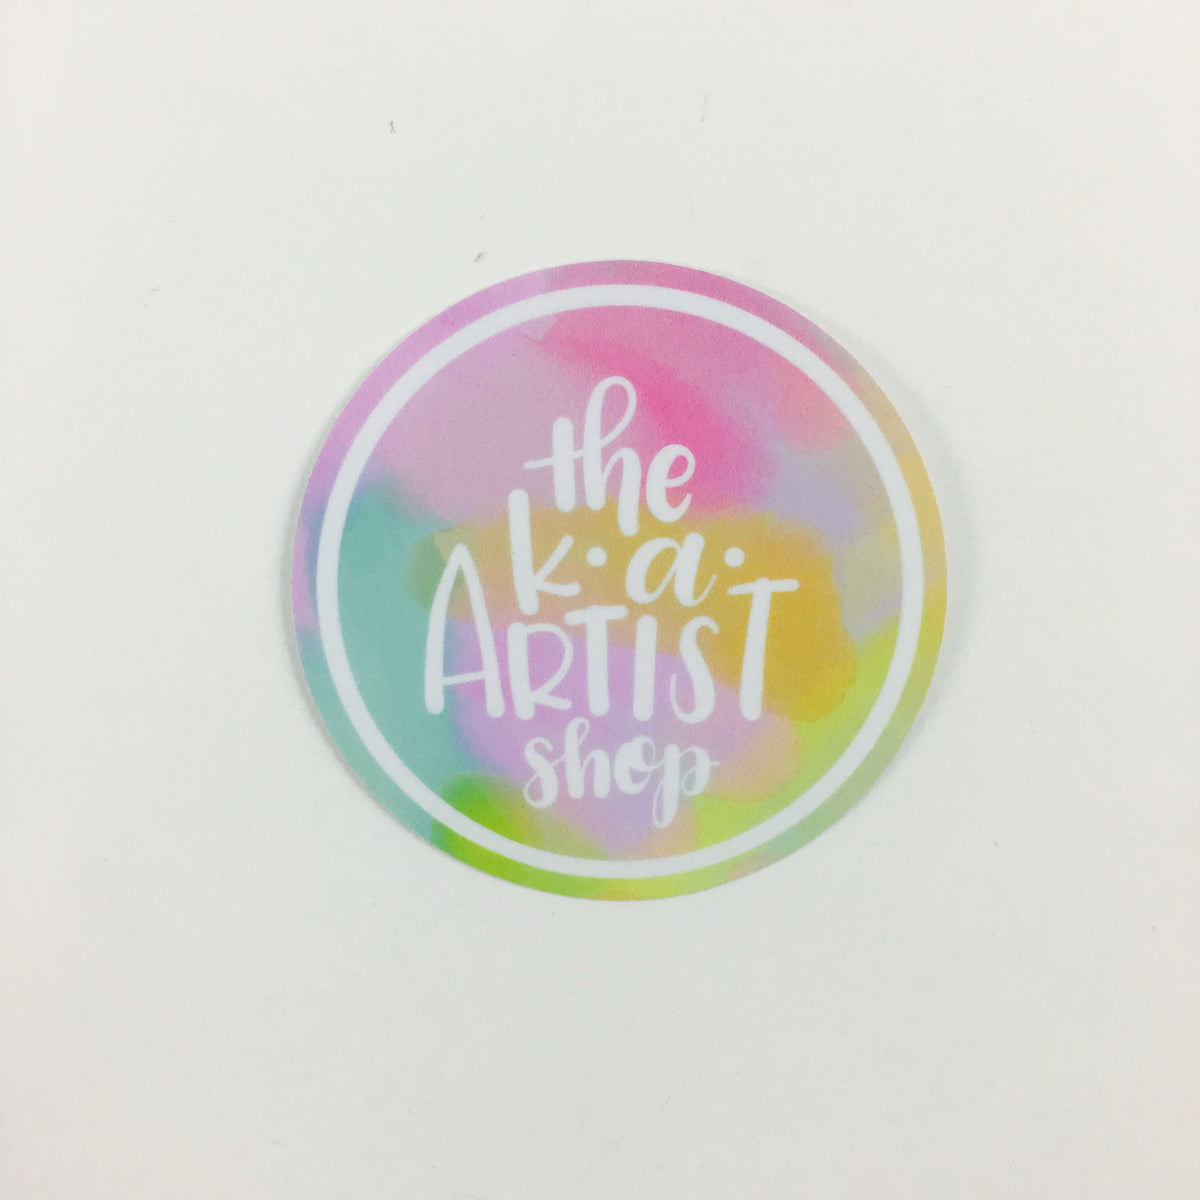 KA Artist Shop Stickers